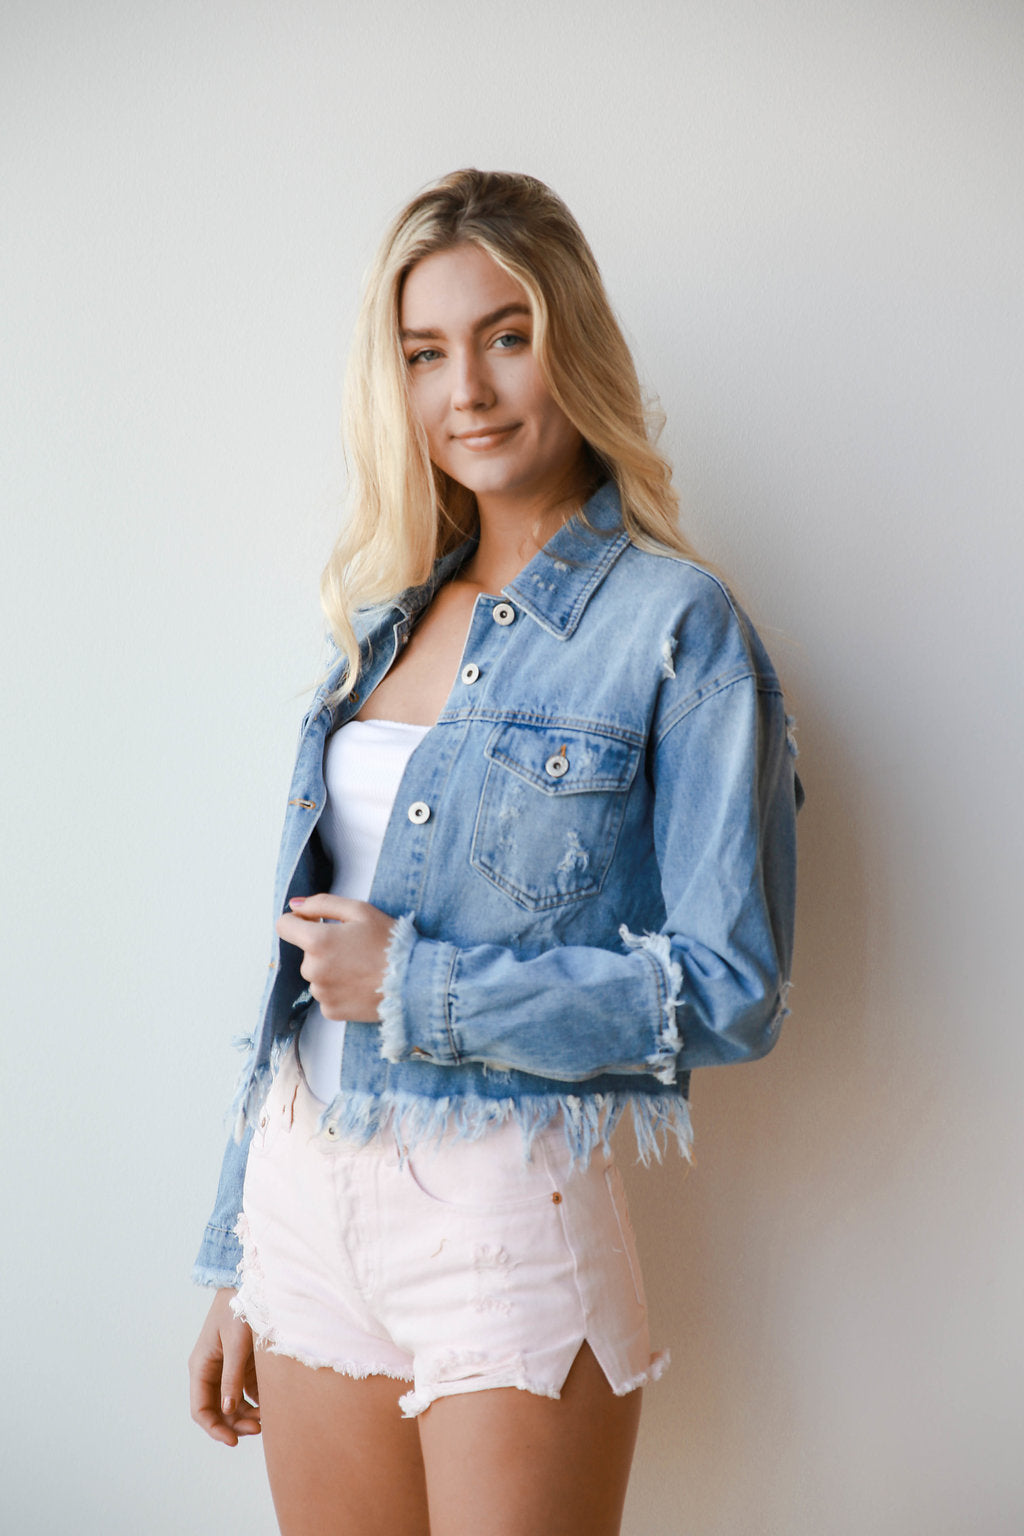 [shop name], floral & grace distressed denim jacket